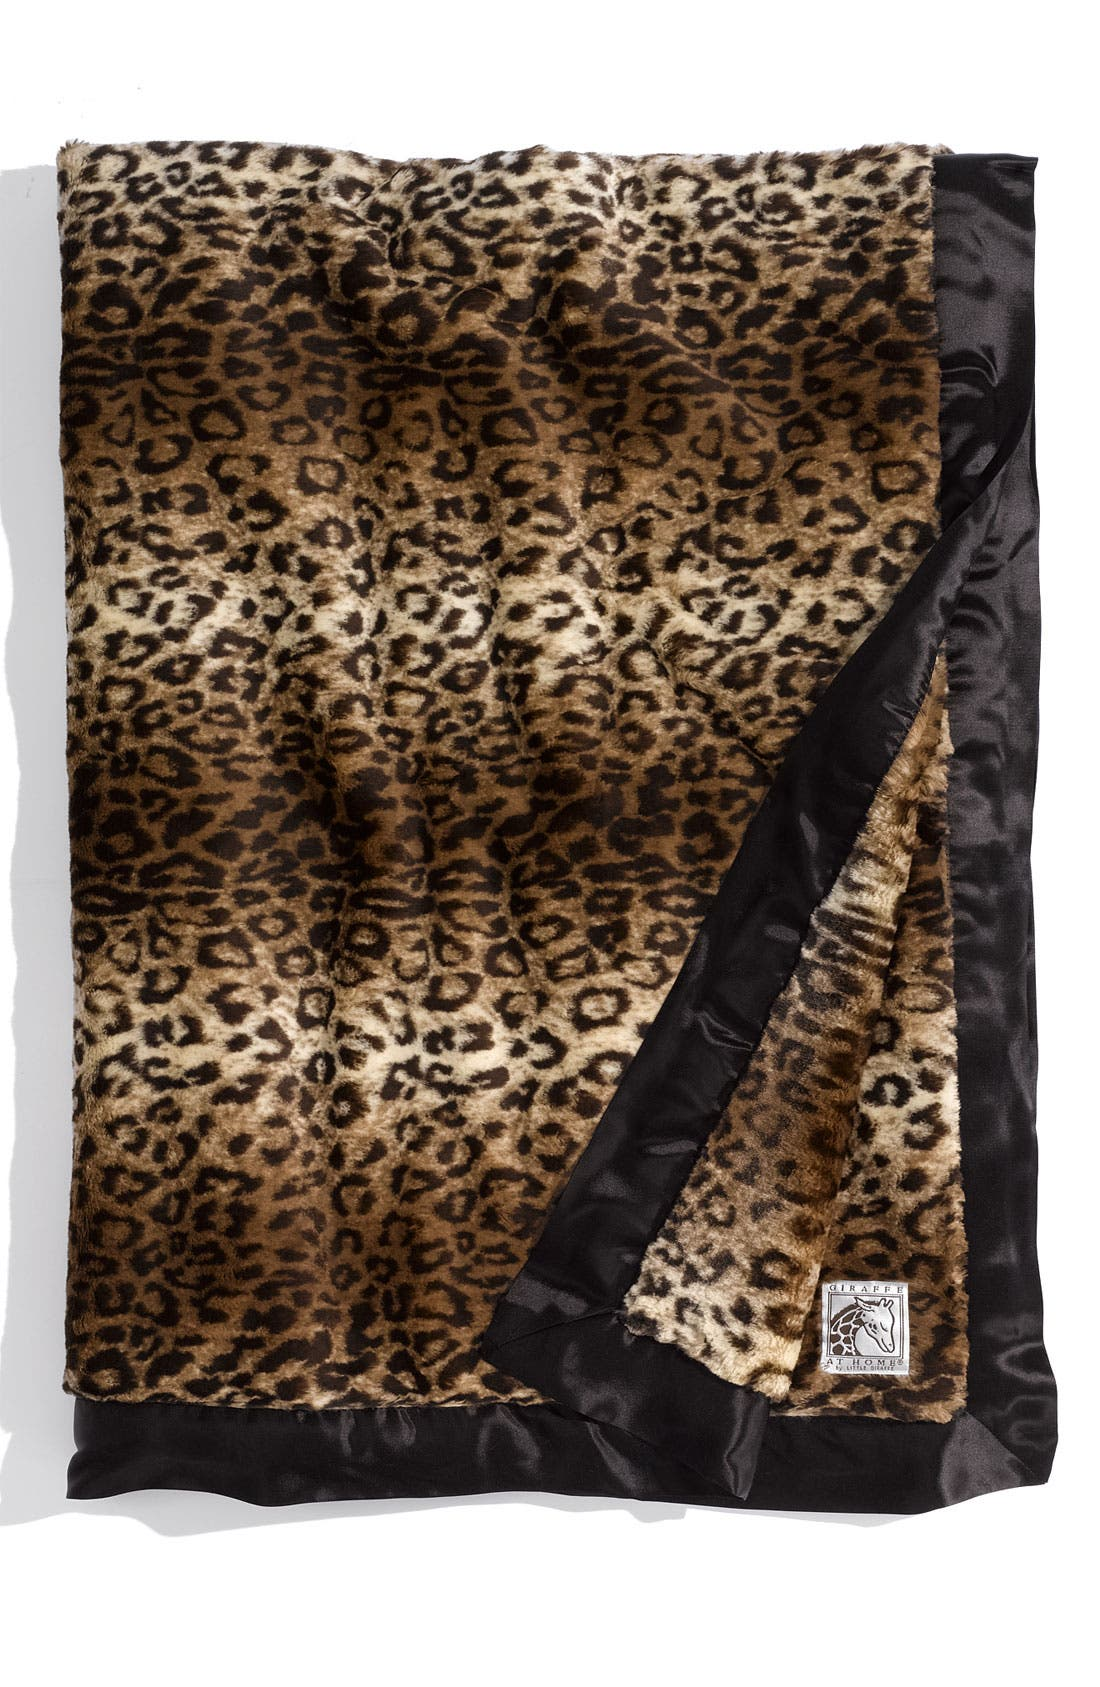 Alternate Image 1 Selected - Giraffe at Home 'Luxe™ Leopard' Throw